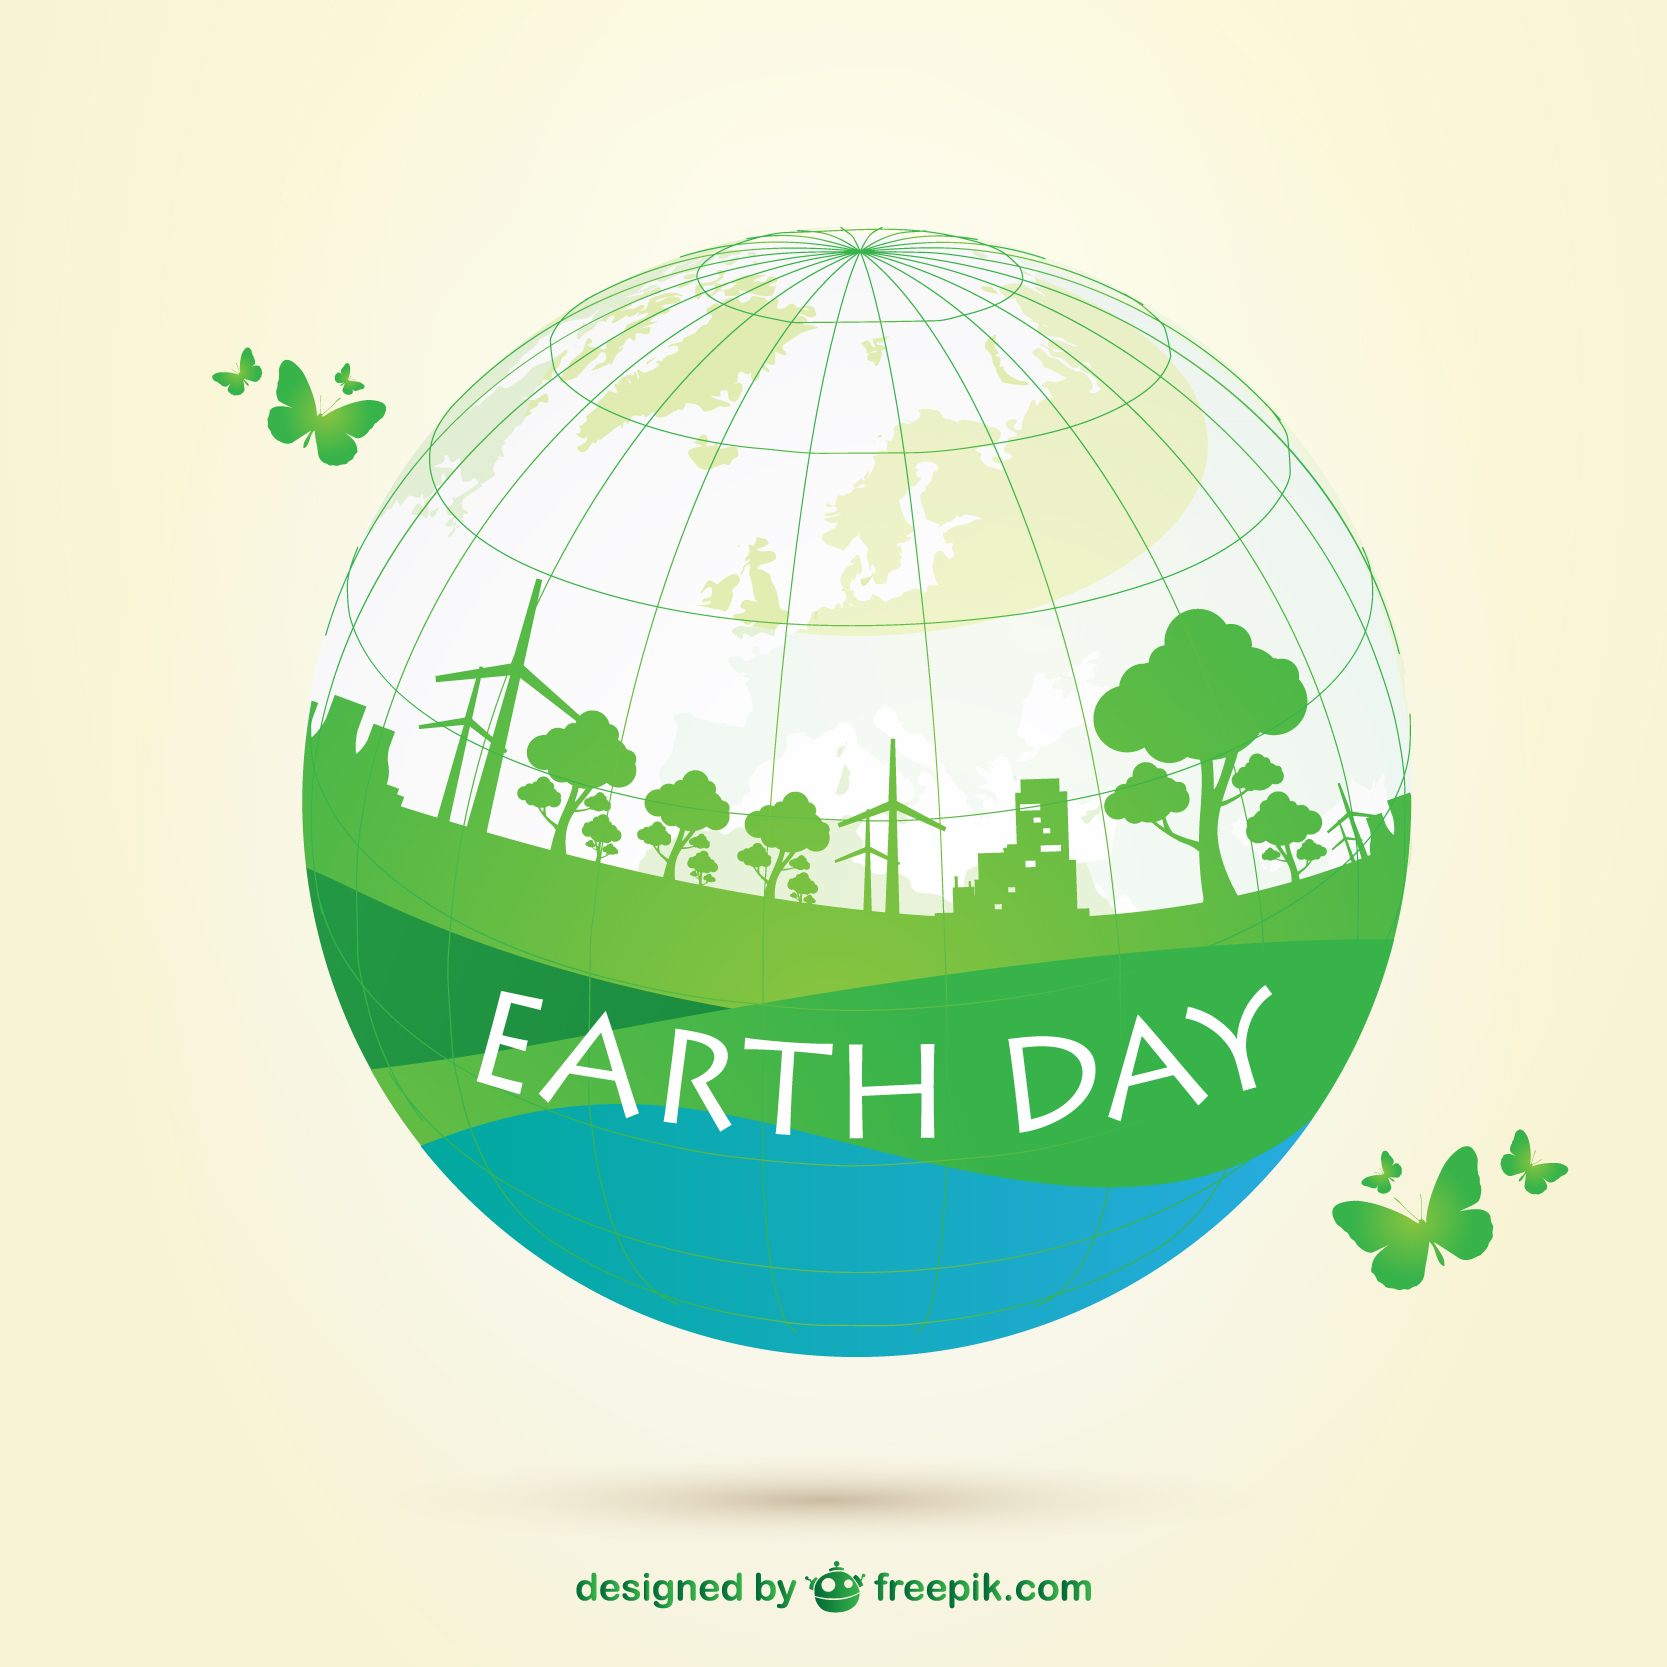 earth-day-vector-01